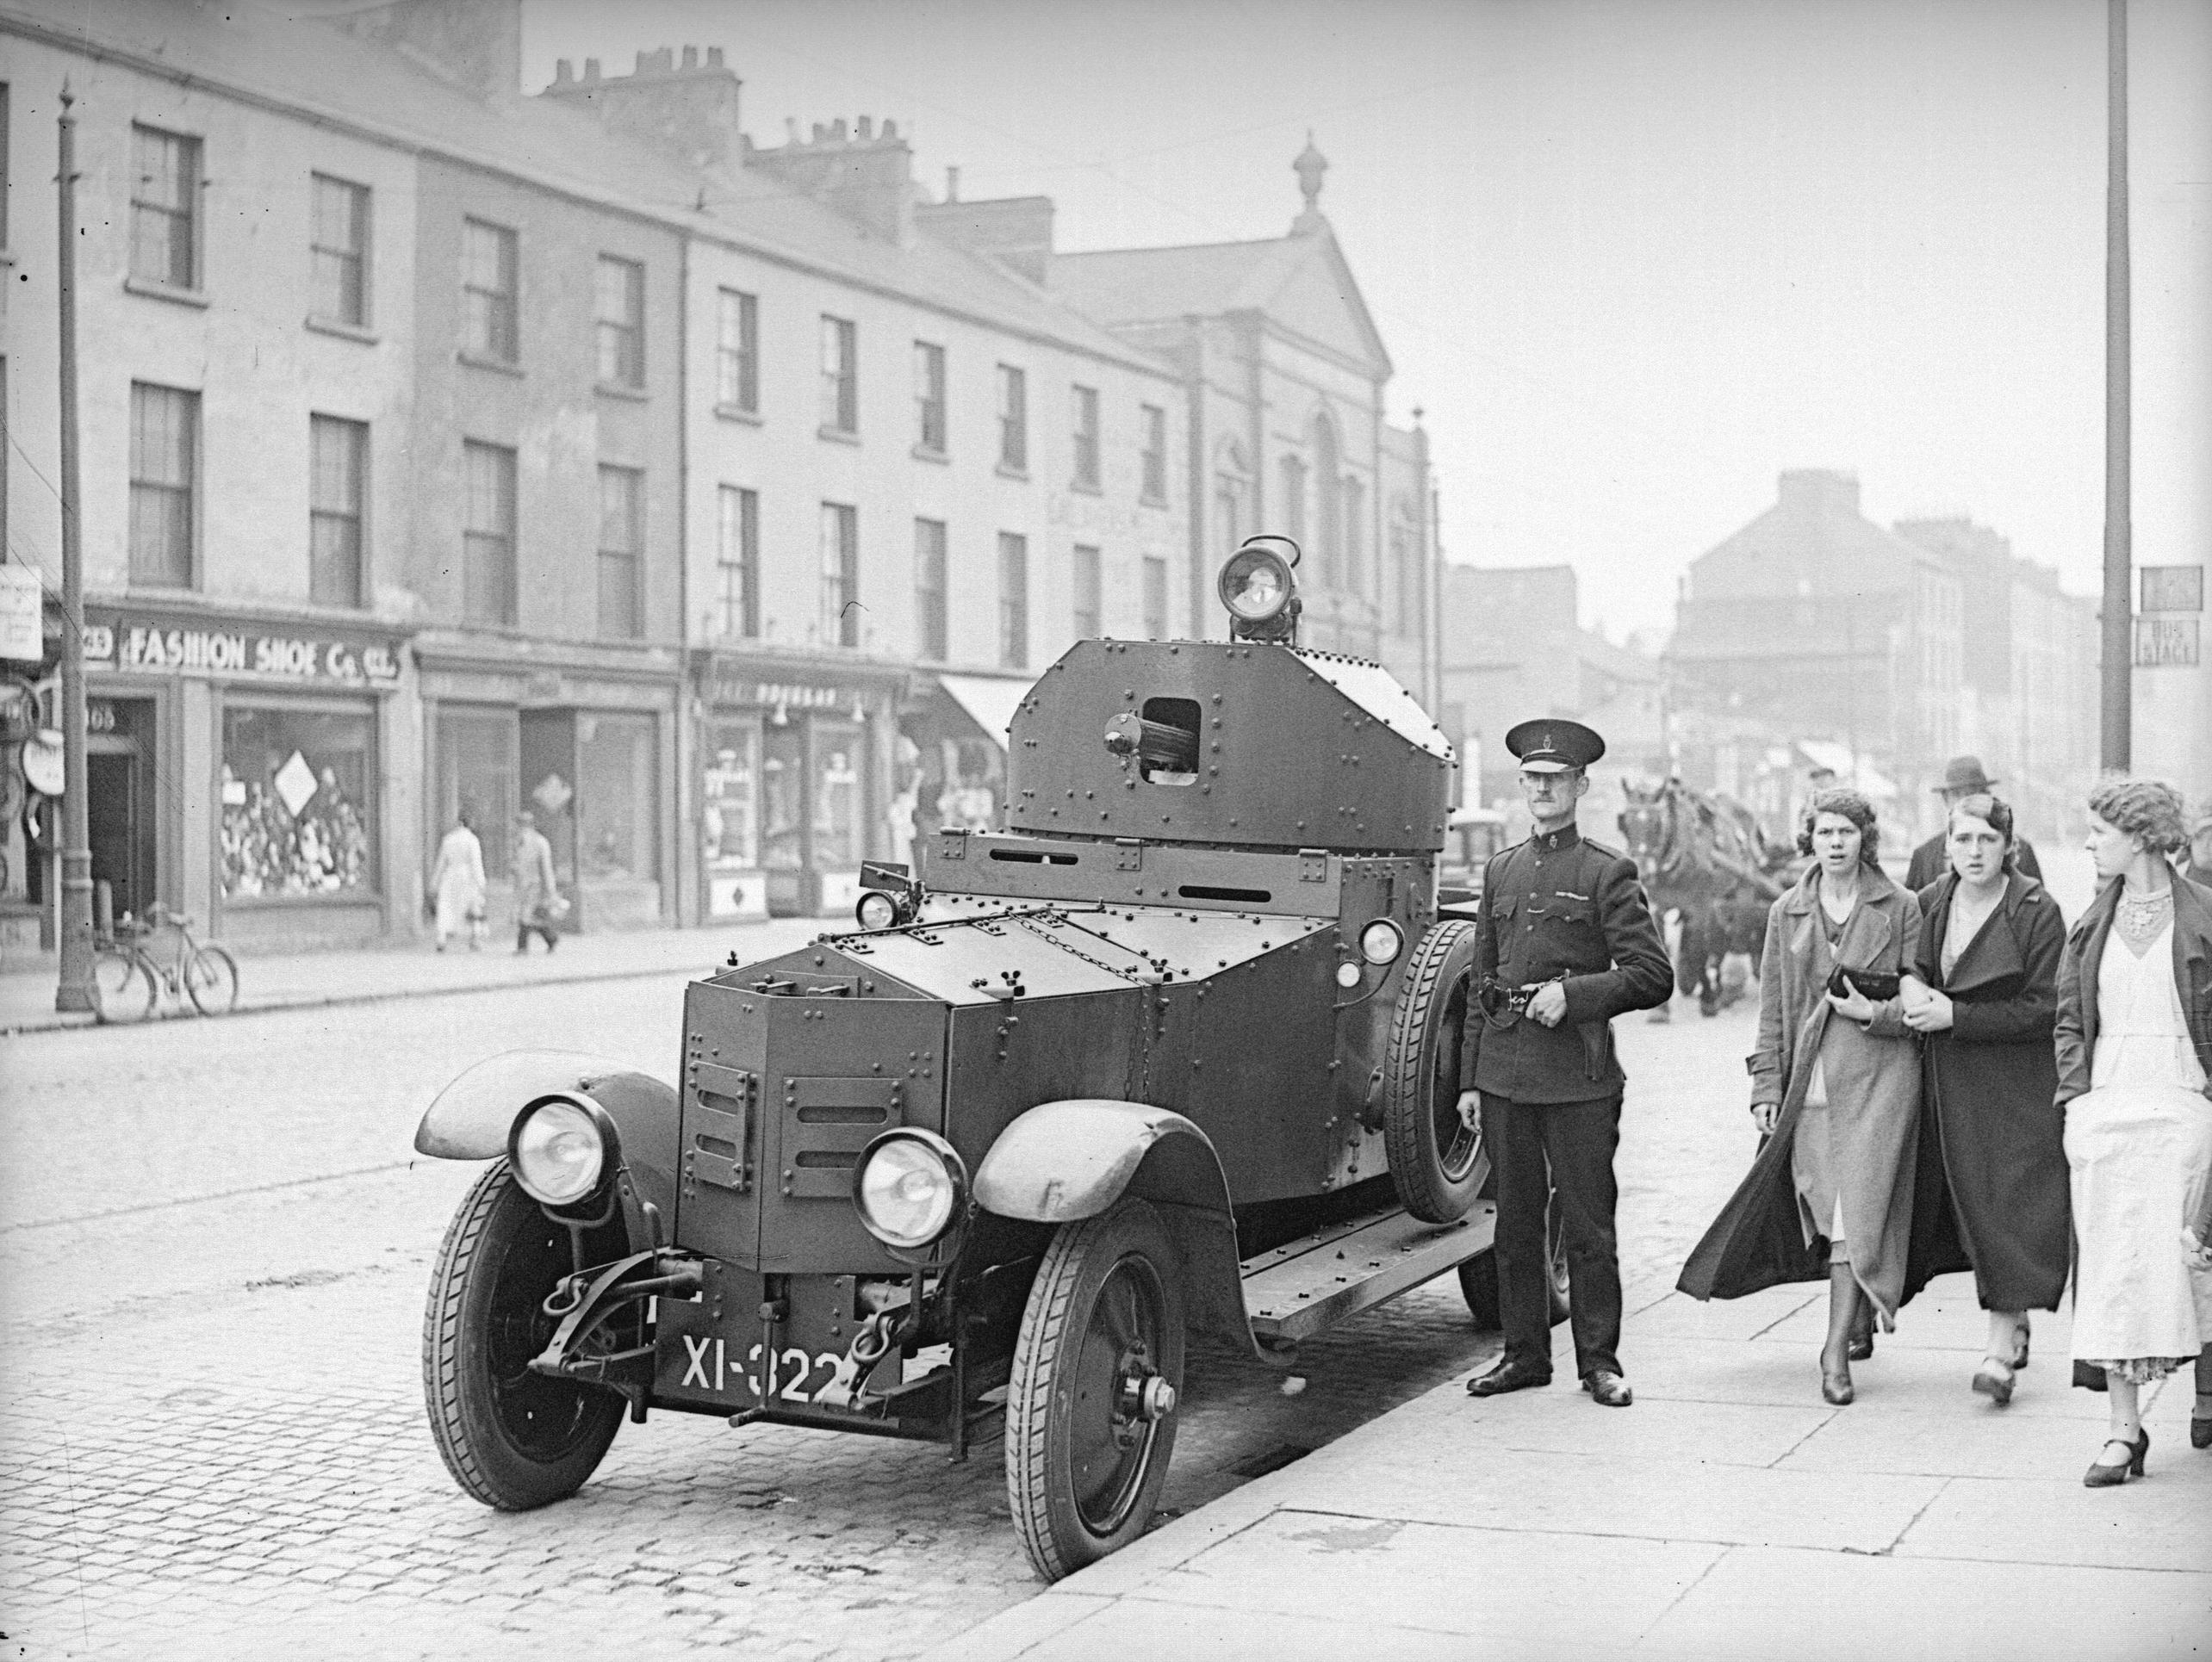 A Rolls-Royce Armoured car in York Street, June 1935.